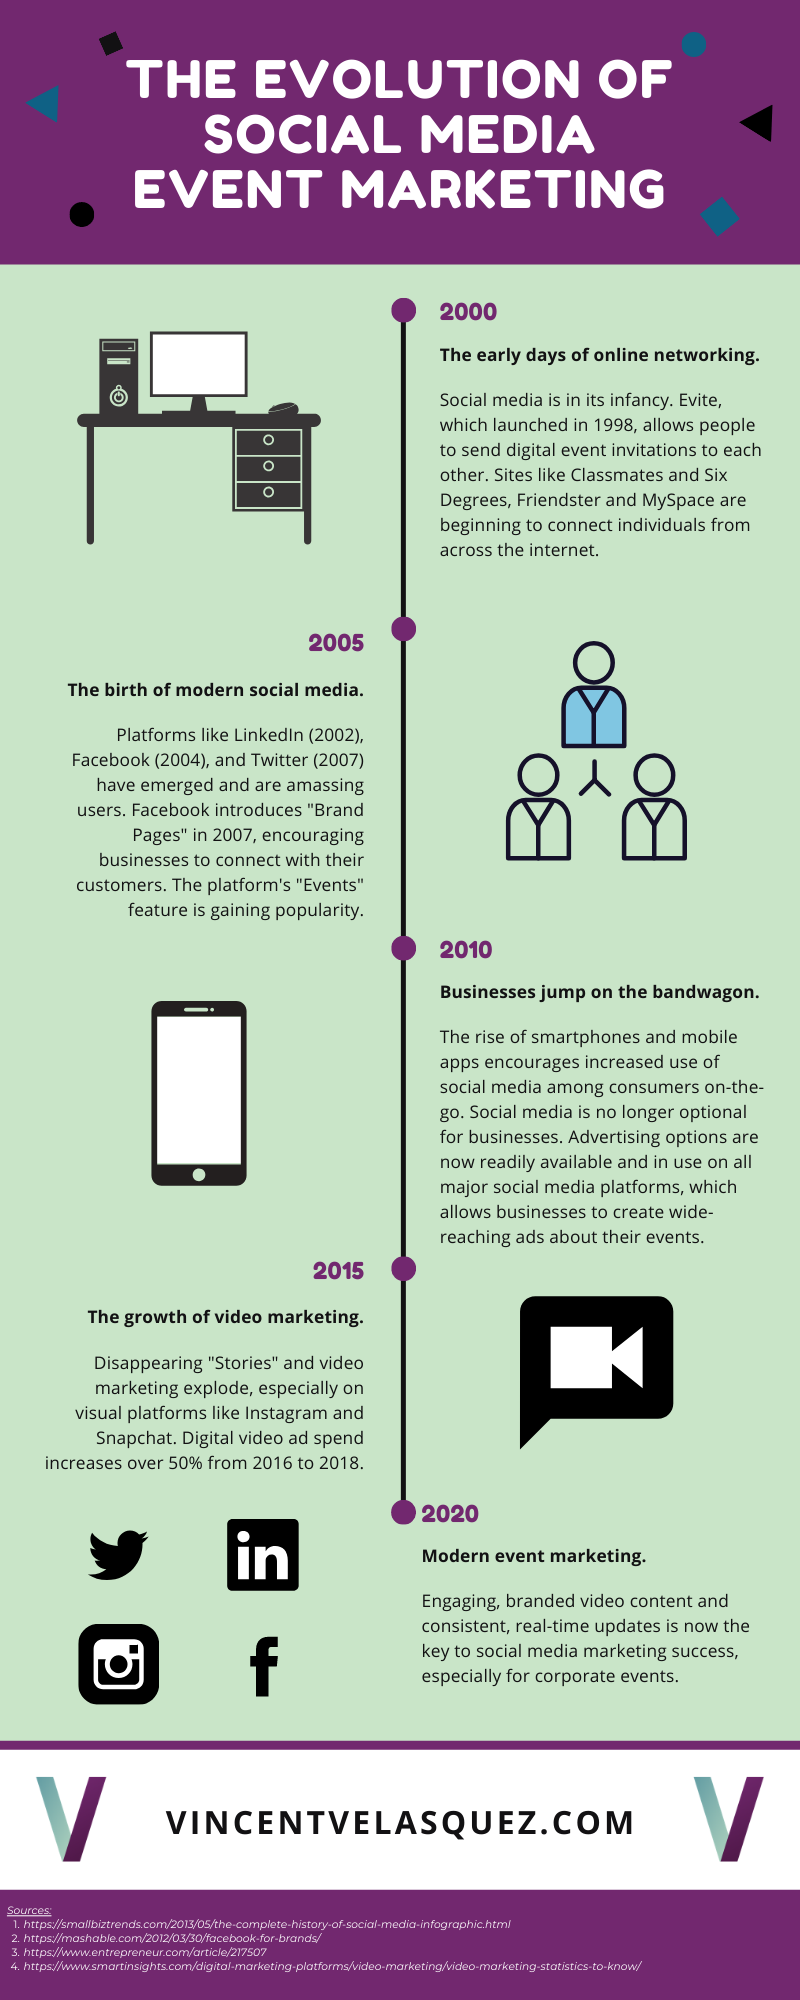 infographic - the evolution of social media event marketing